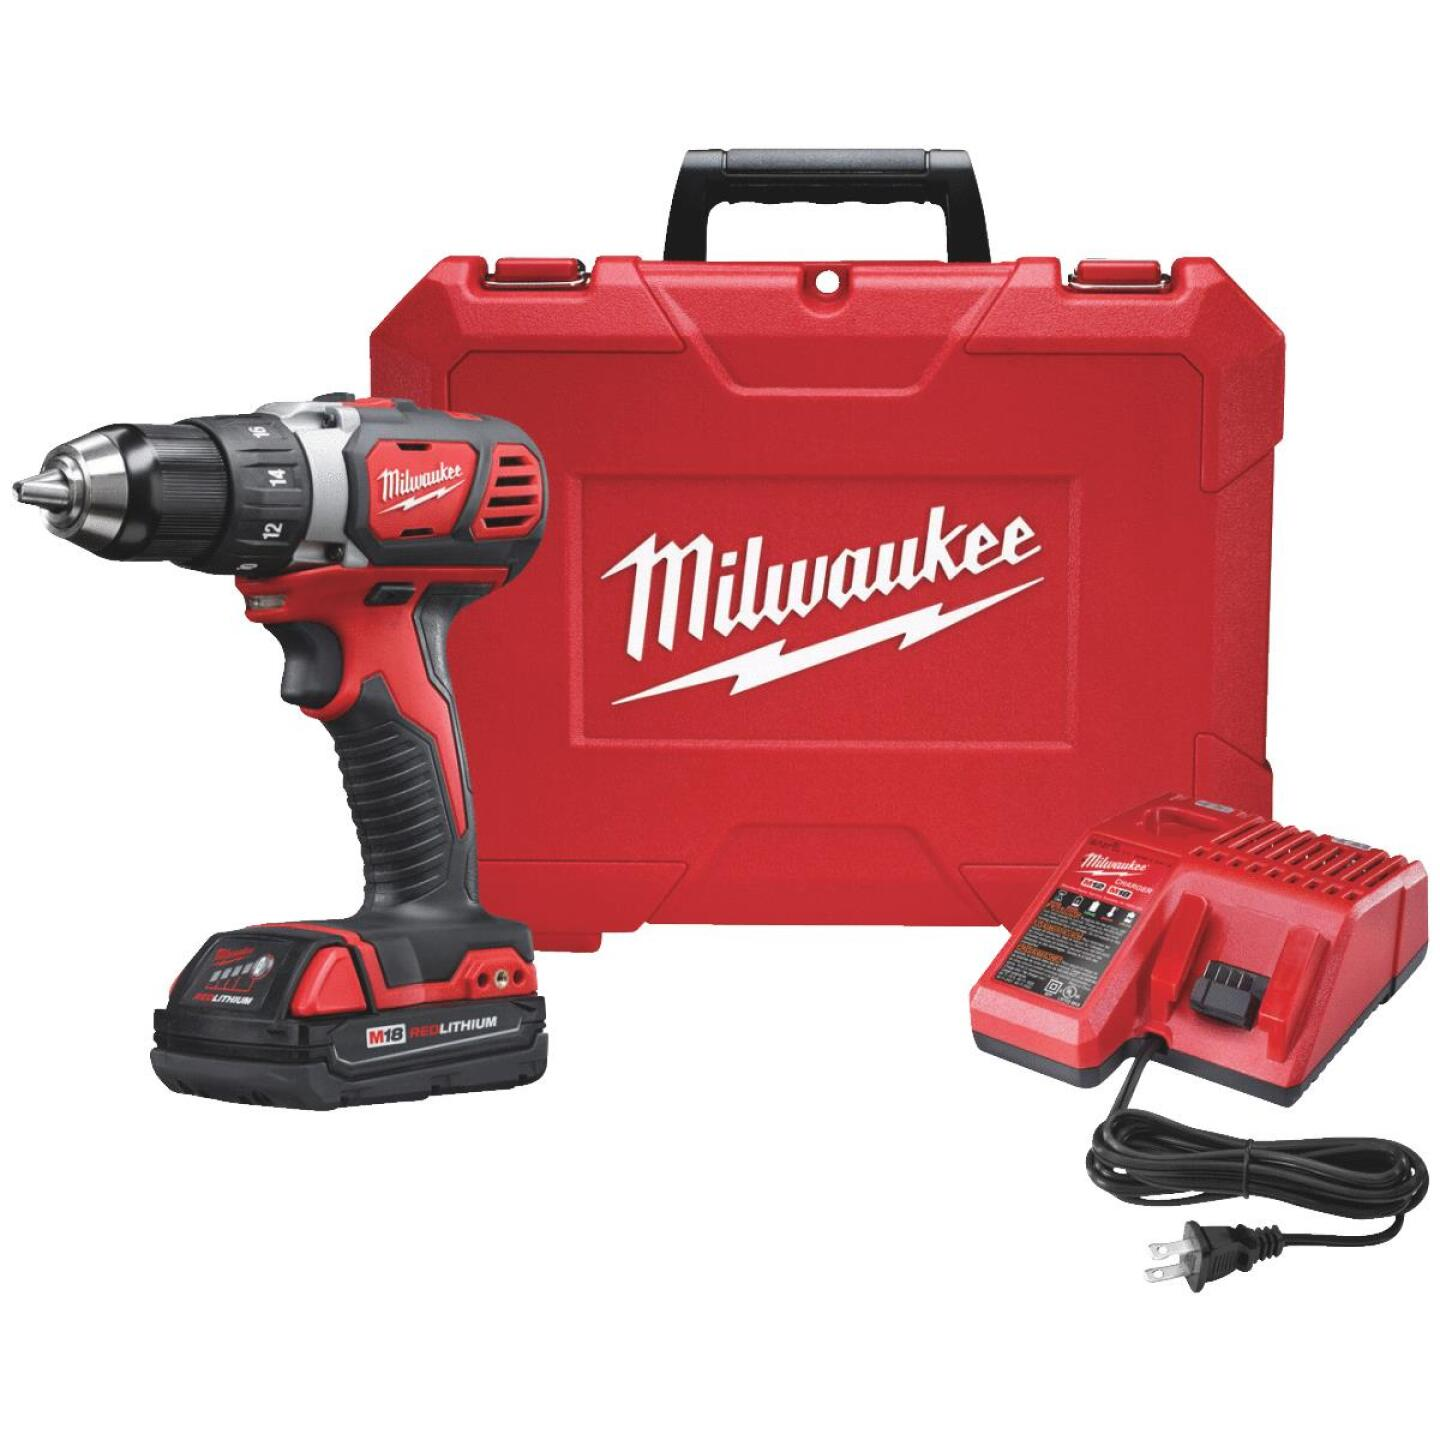 Milwaukee M18 18 Volt Lithium-Ion 1/2 In. Compact Cordless Drill Kit Image 1